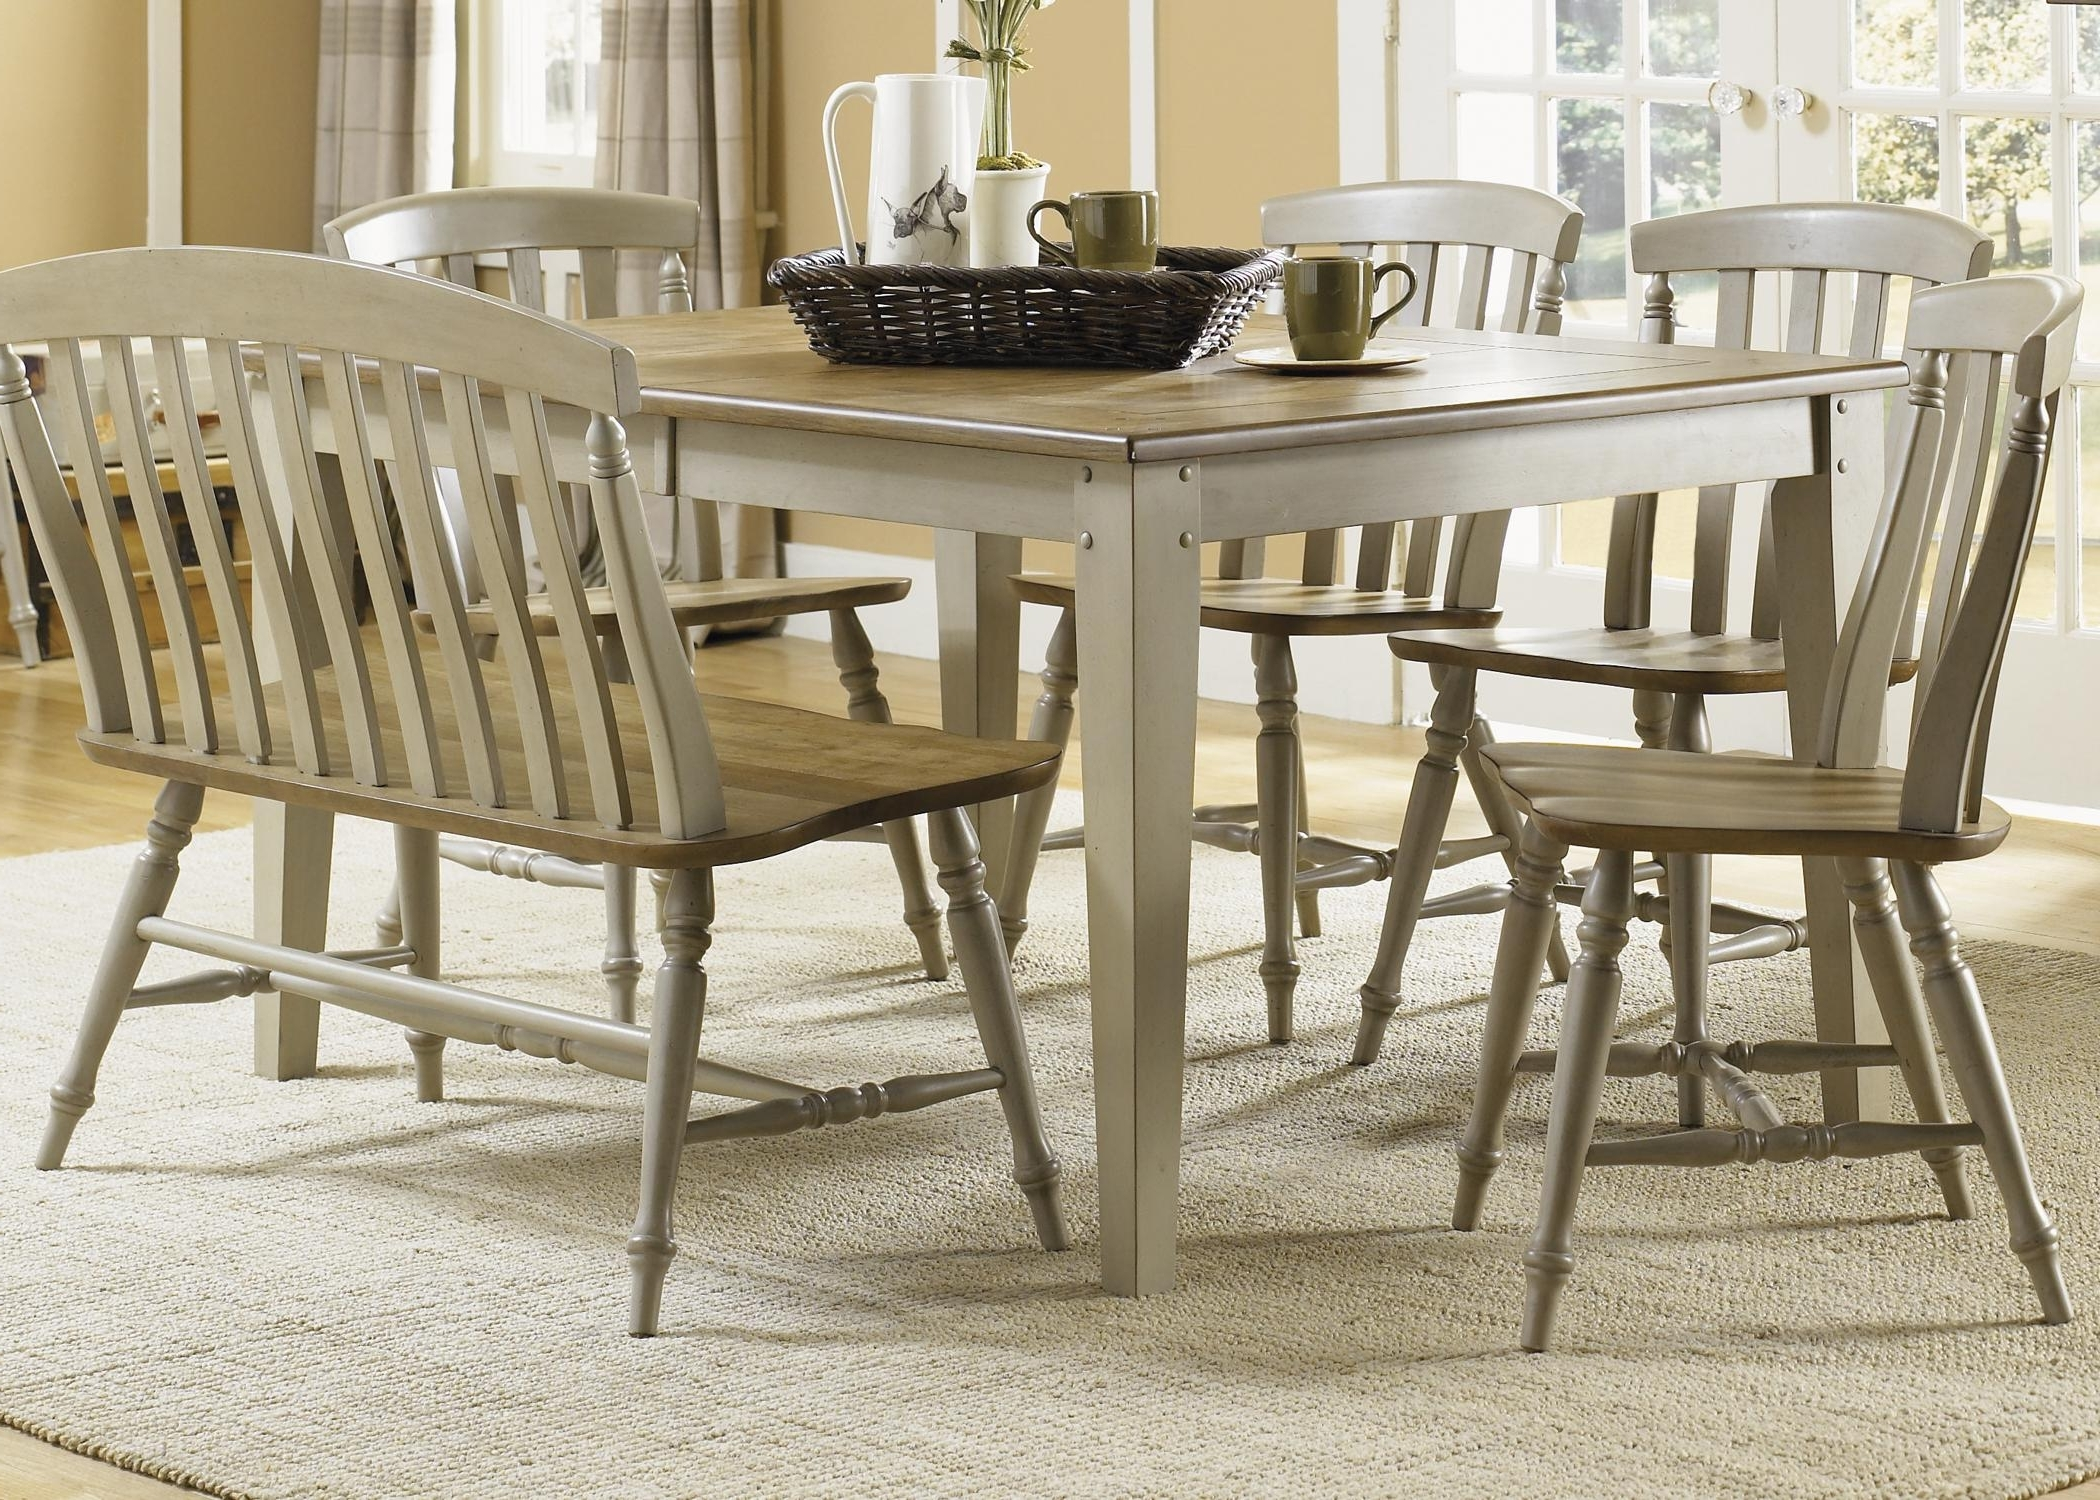 Six Piece Dining Table Set With Chairs And Benchliberty Pertaining To Recent 6 Seat Dining Table Sets (View 12 of 25)